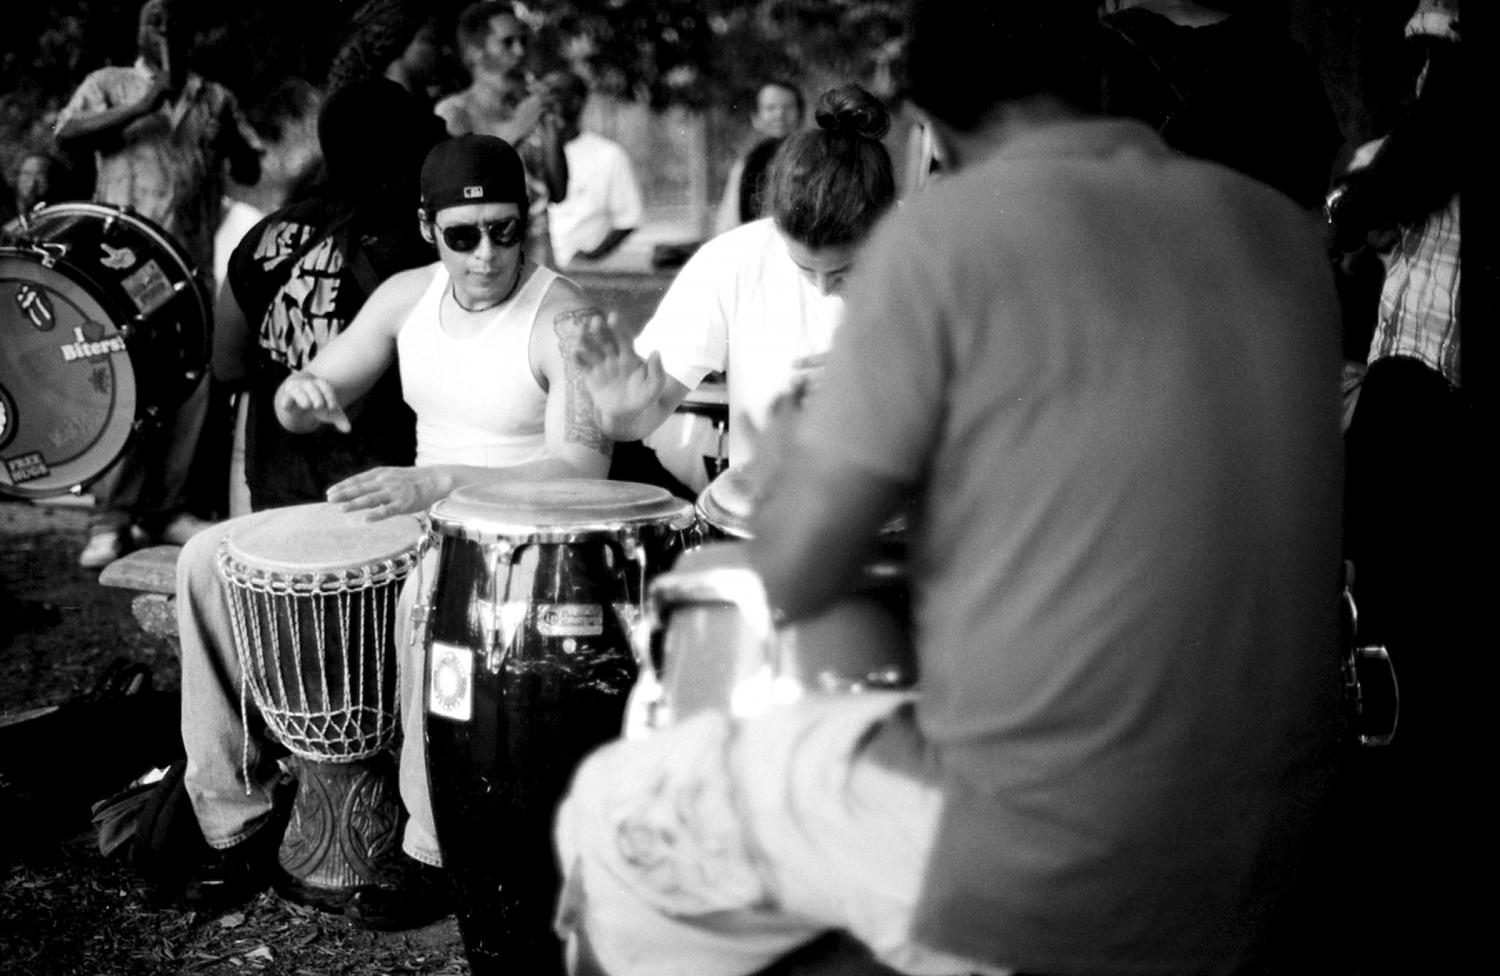 The drum circle has been going on for at least 50 years, and is believed to have formed from the drum circles that happened during the marches and protests of the civil rights movement.